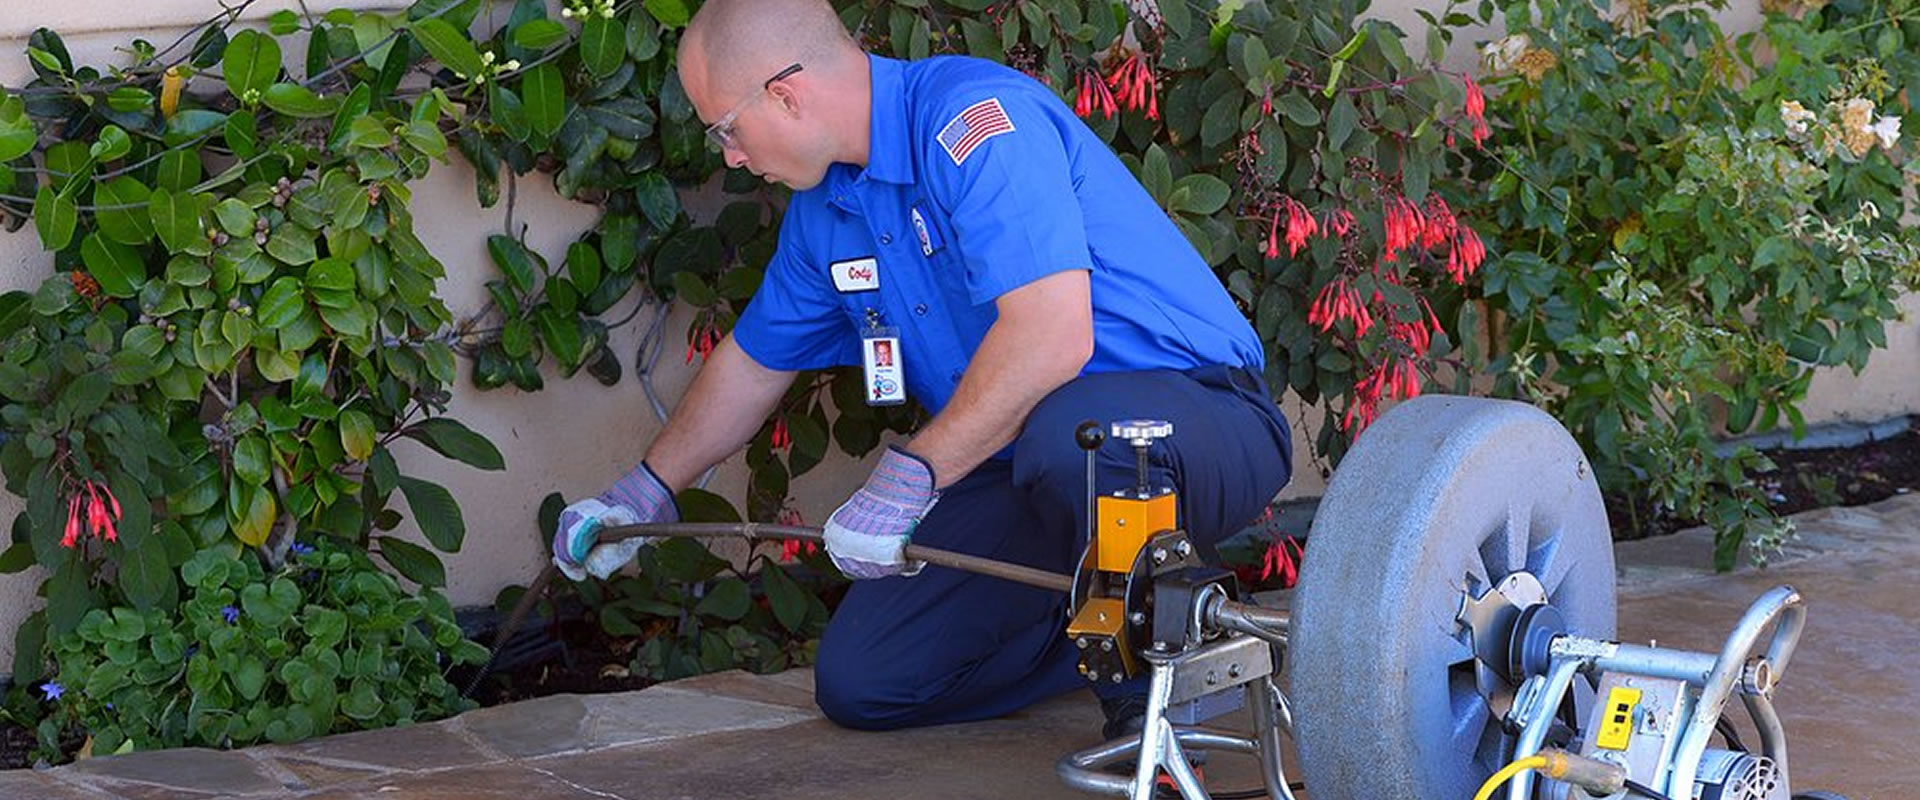 Trenchless Sewer Repair in Pinole, CA